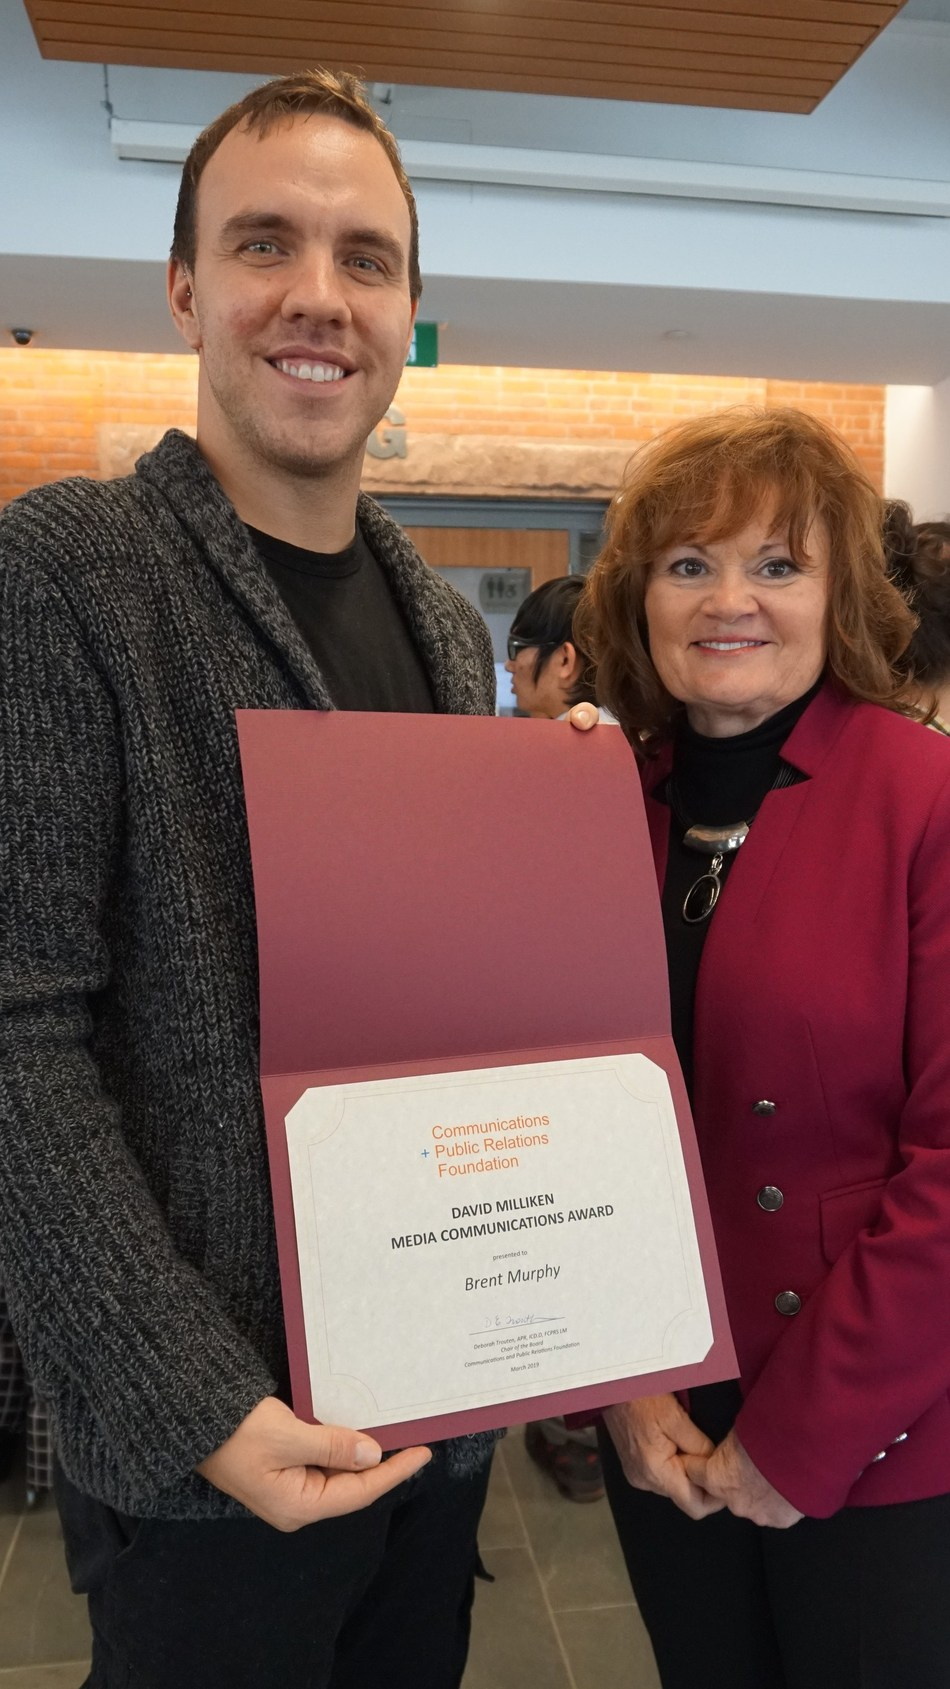 Brent Murphy (left) receiving the 2019 David Milliken Media Communications Award from C+PRF Chair Deborah Trouten, APR, FCPRS LM (right). (CNW Group/Communications + Public Relations Foundation)